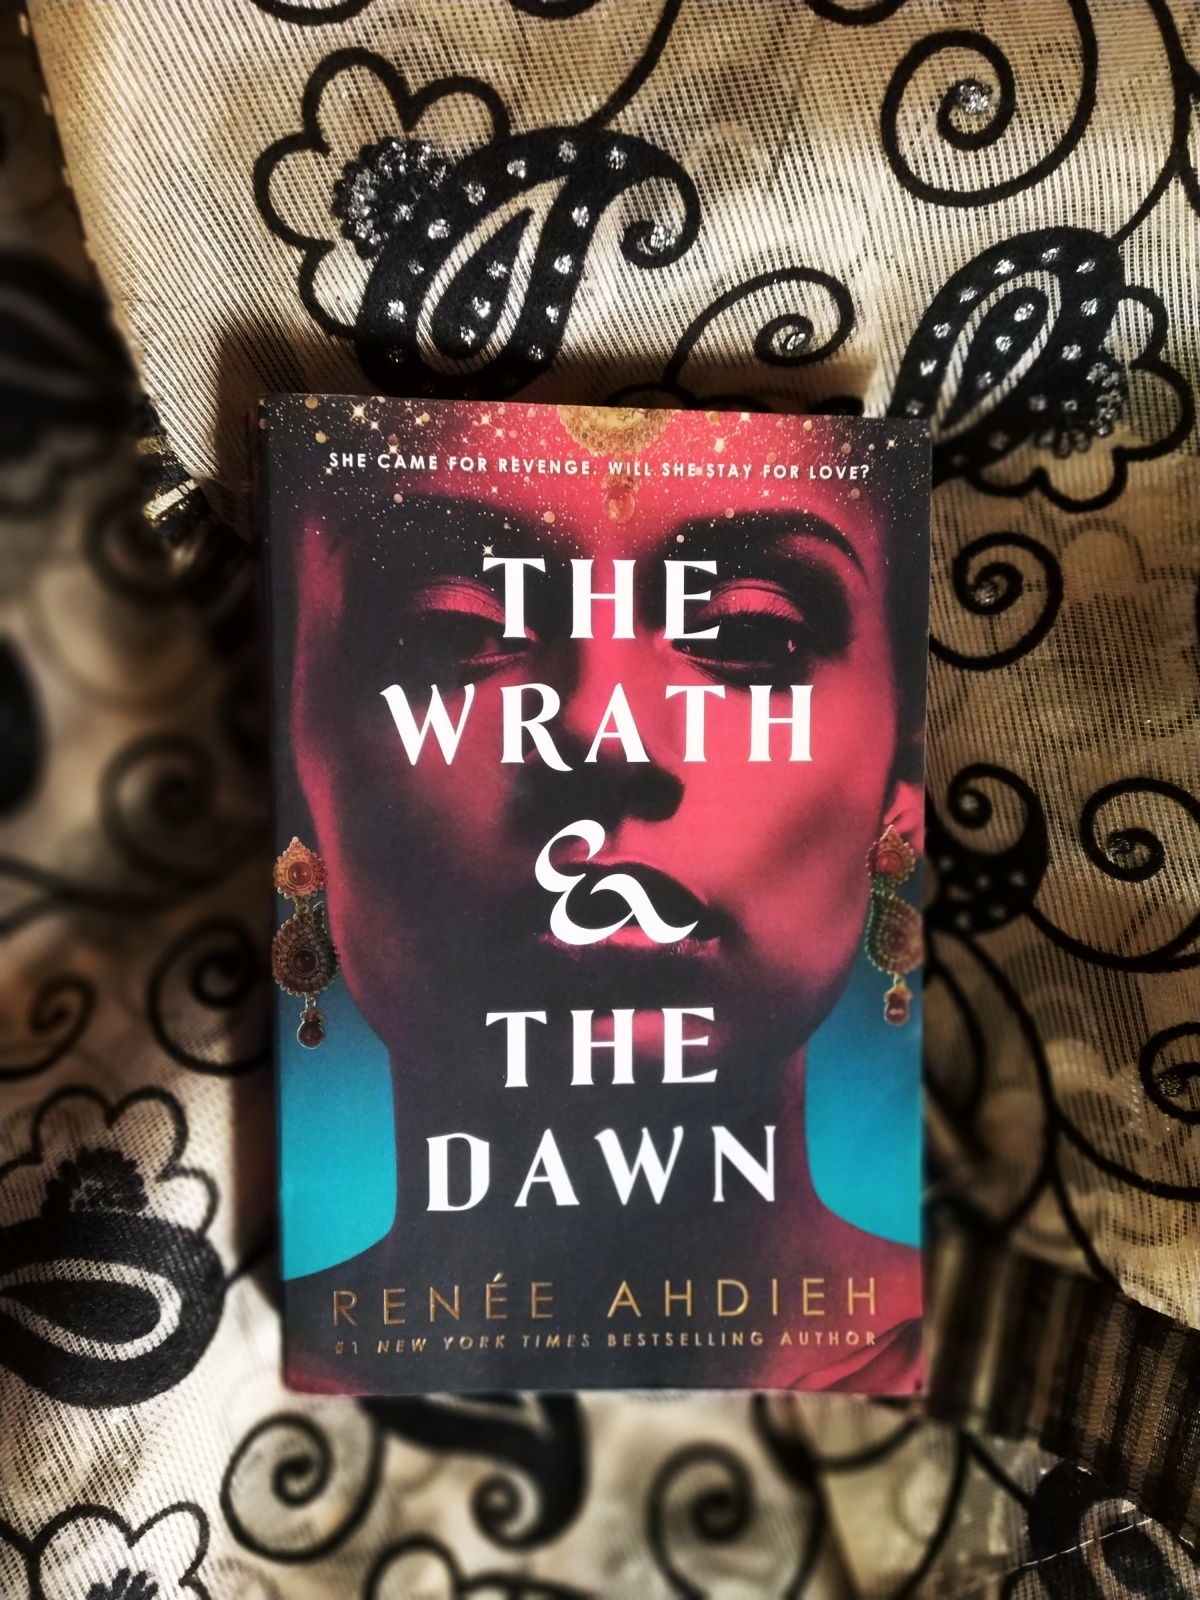 The Wrath & The Dawn is a riveting tale, but not withoutflaws